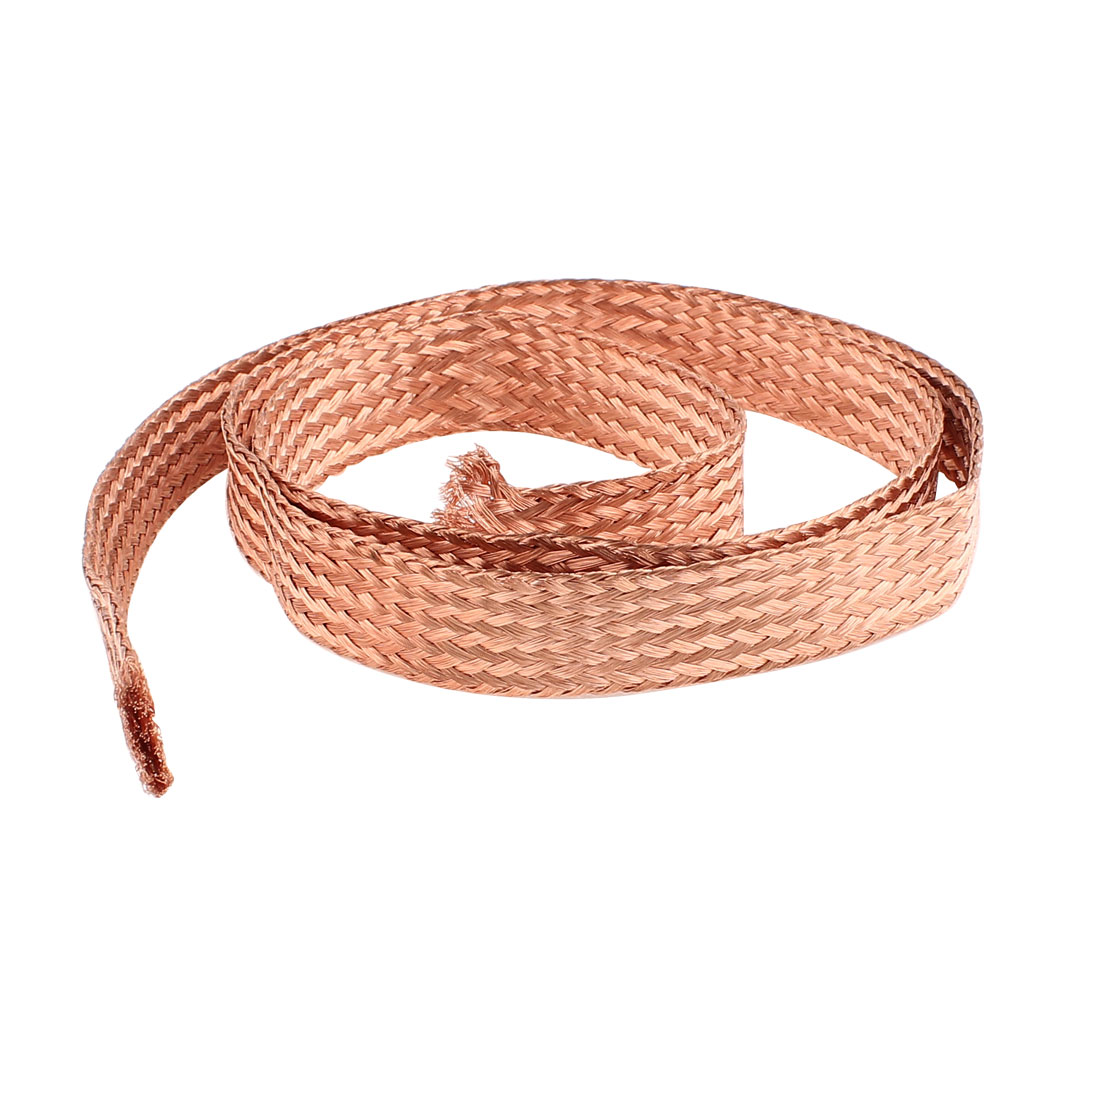 10 Square Millimeter Thickness 1M Length Flat Electrical Bare Braided Copper Wire